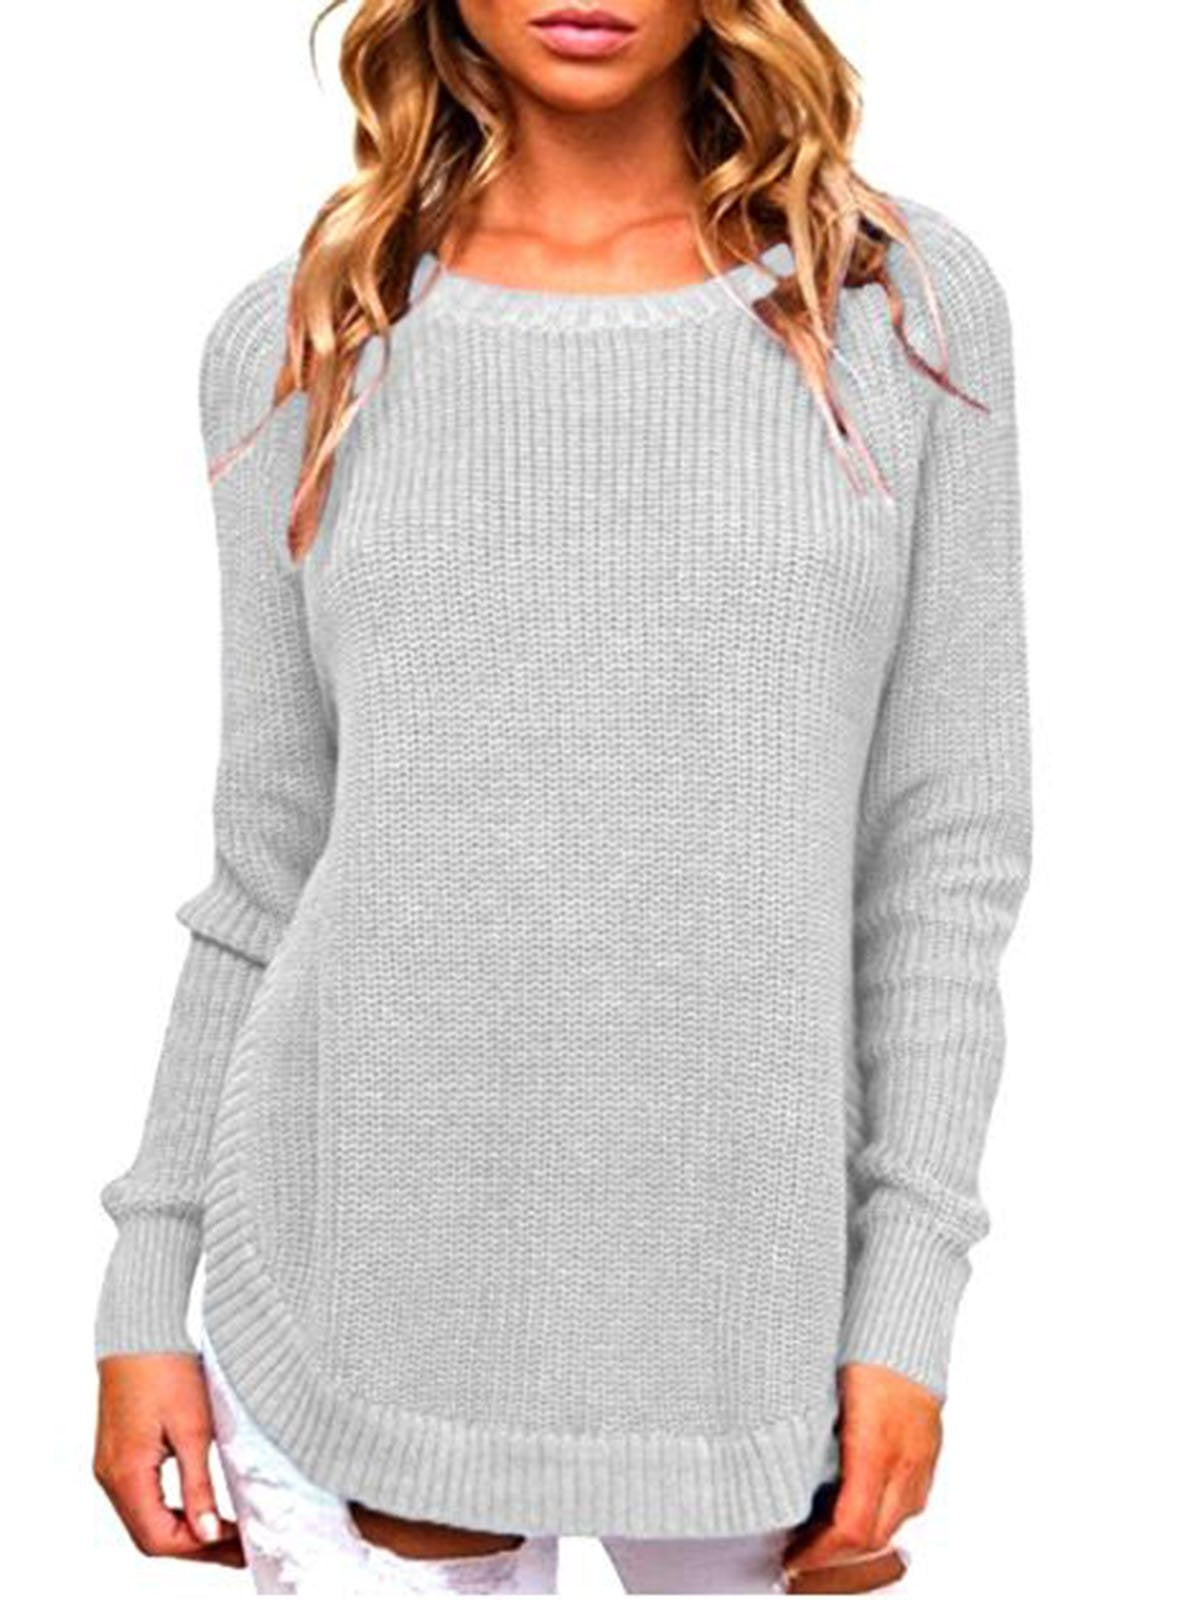 Solid Color Round Neck Raglan sleeve Sweater